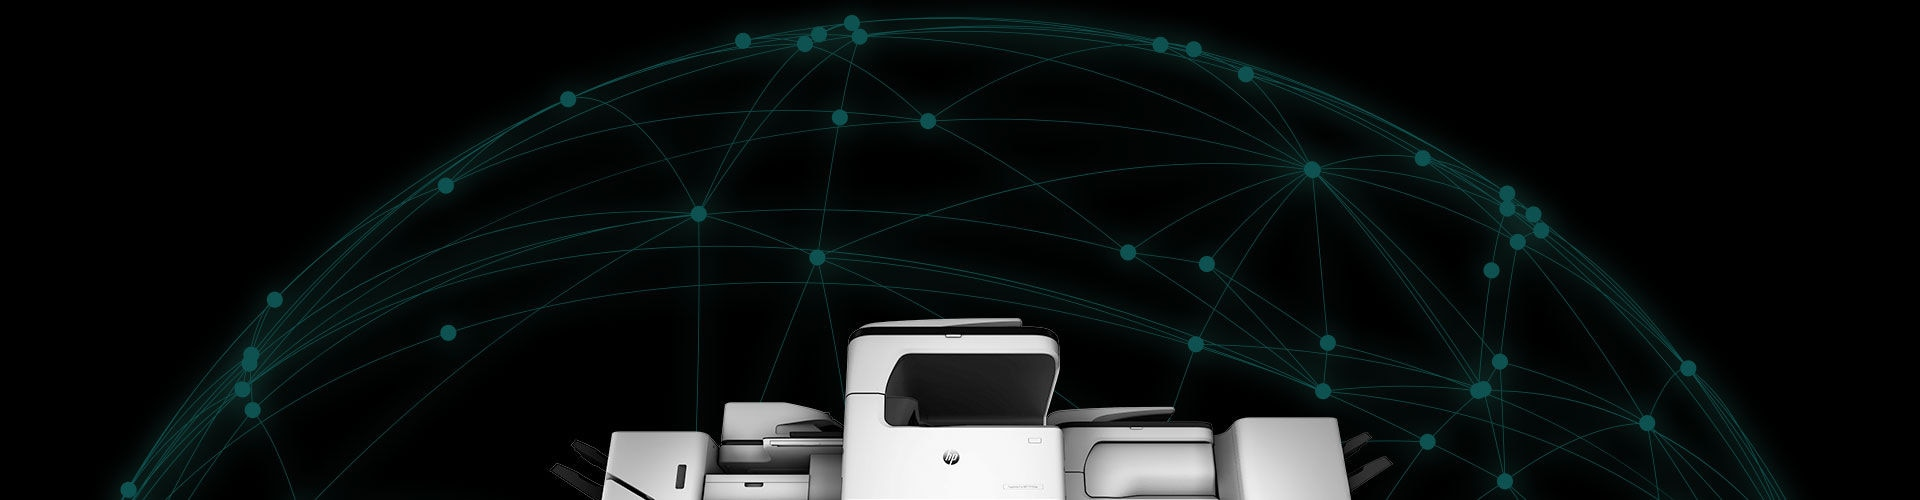 HP Print Security Expert Consultation   HP® Official Site